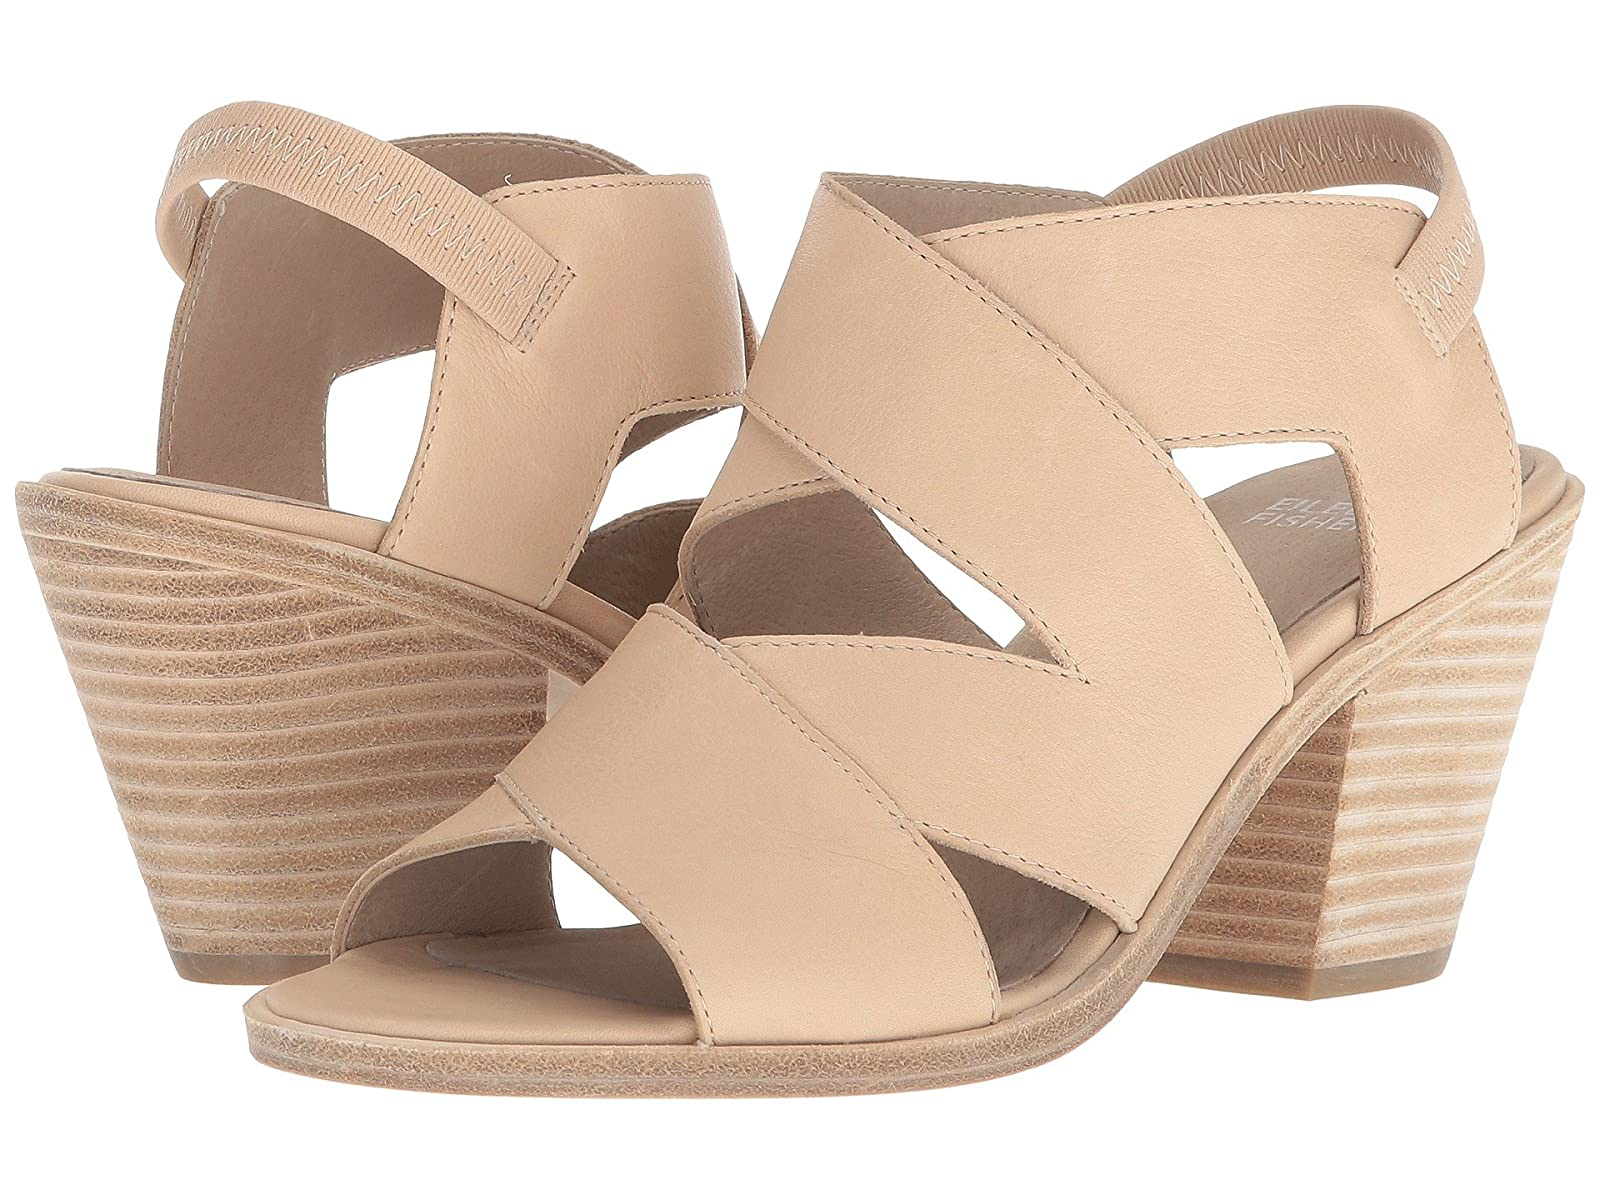 Eileen Fisher RaiAtmospheric grades have affordable shoes